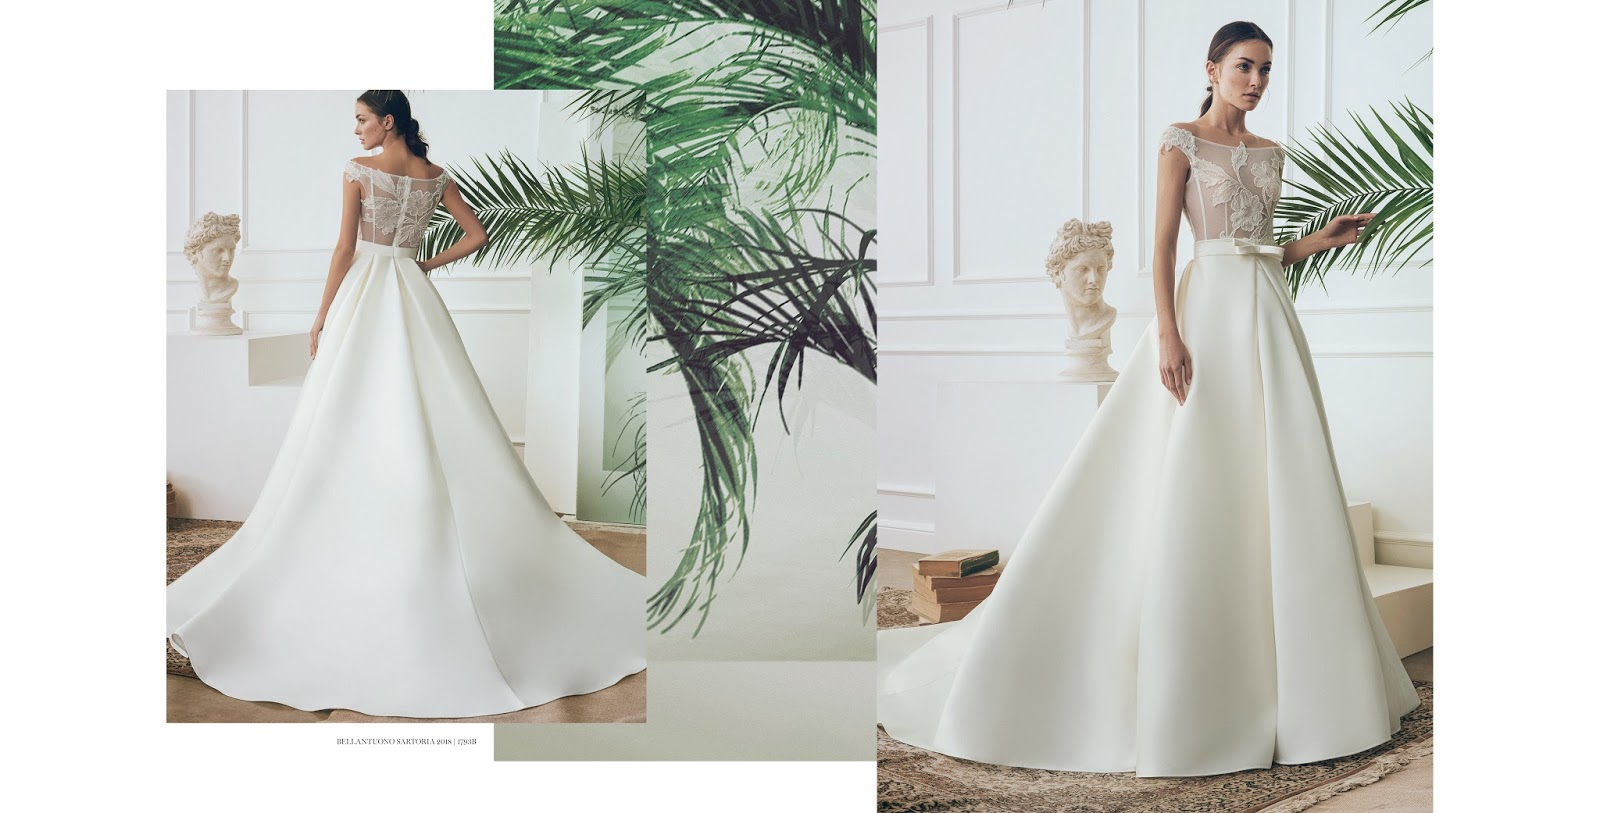 Rock & Lace | The home of Italian Bridal Fashion |